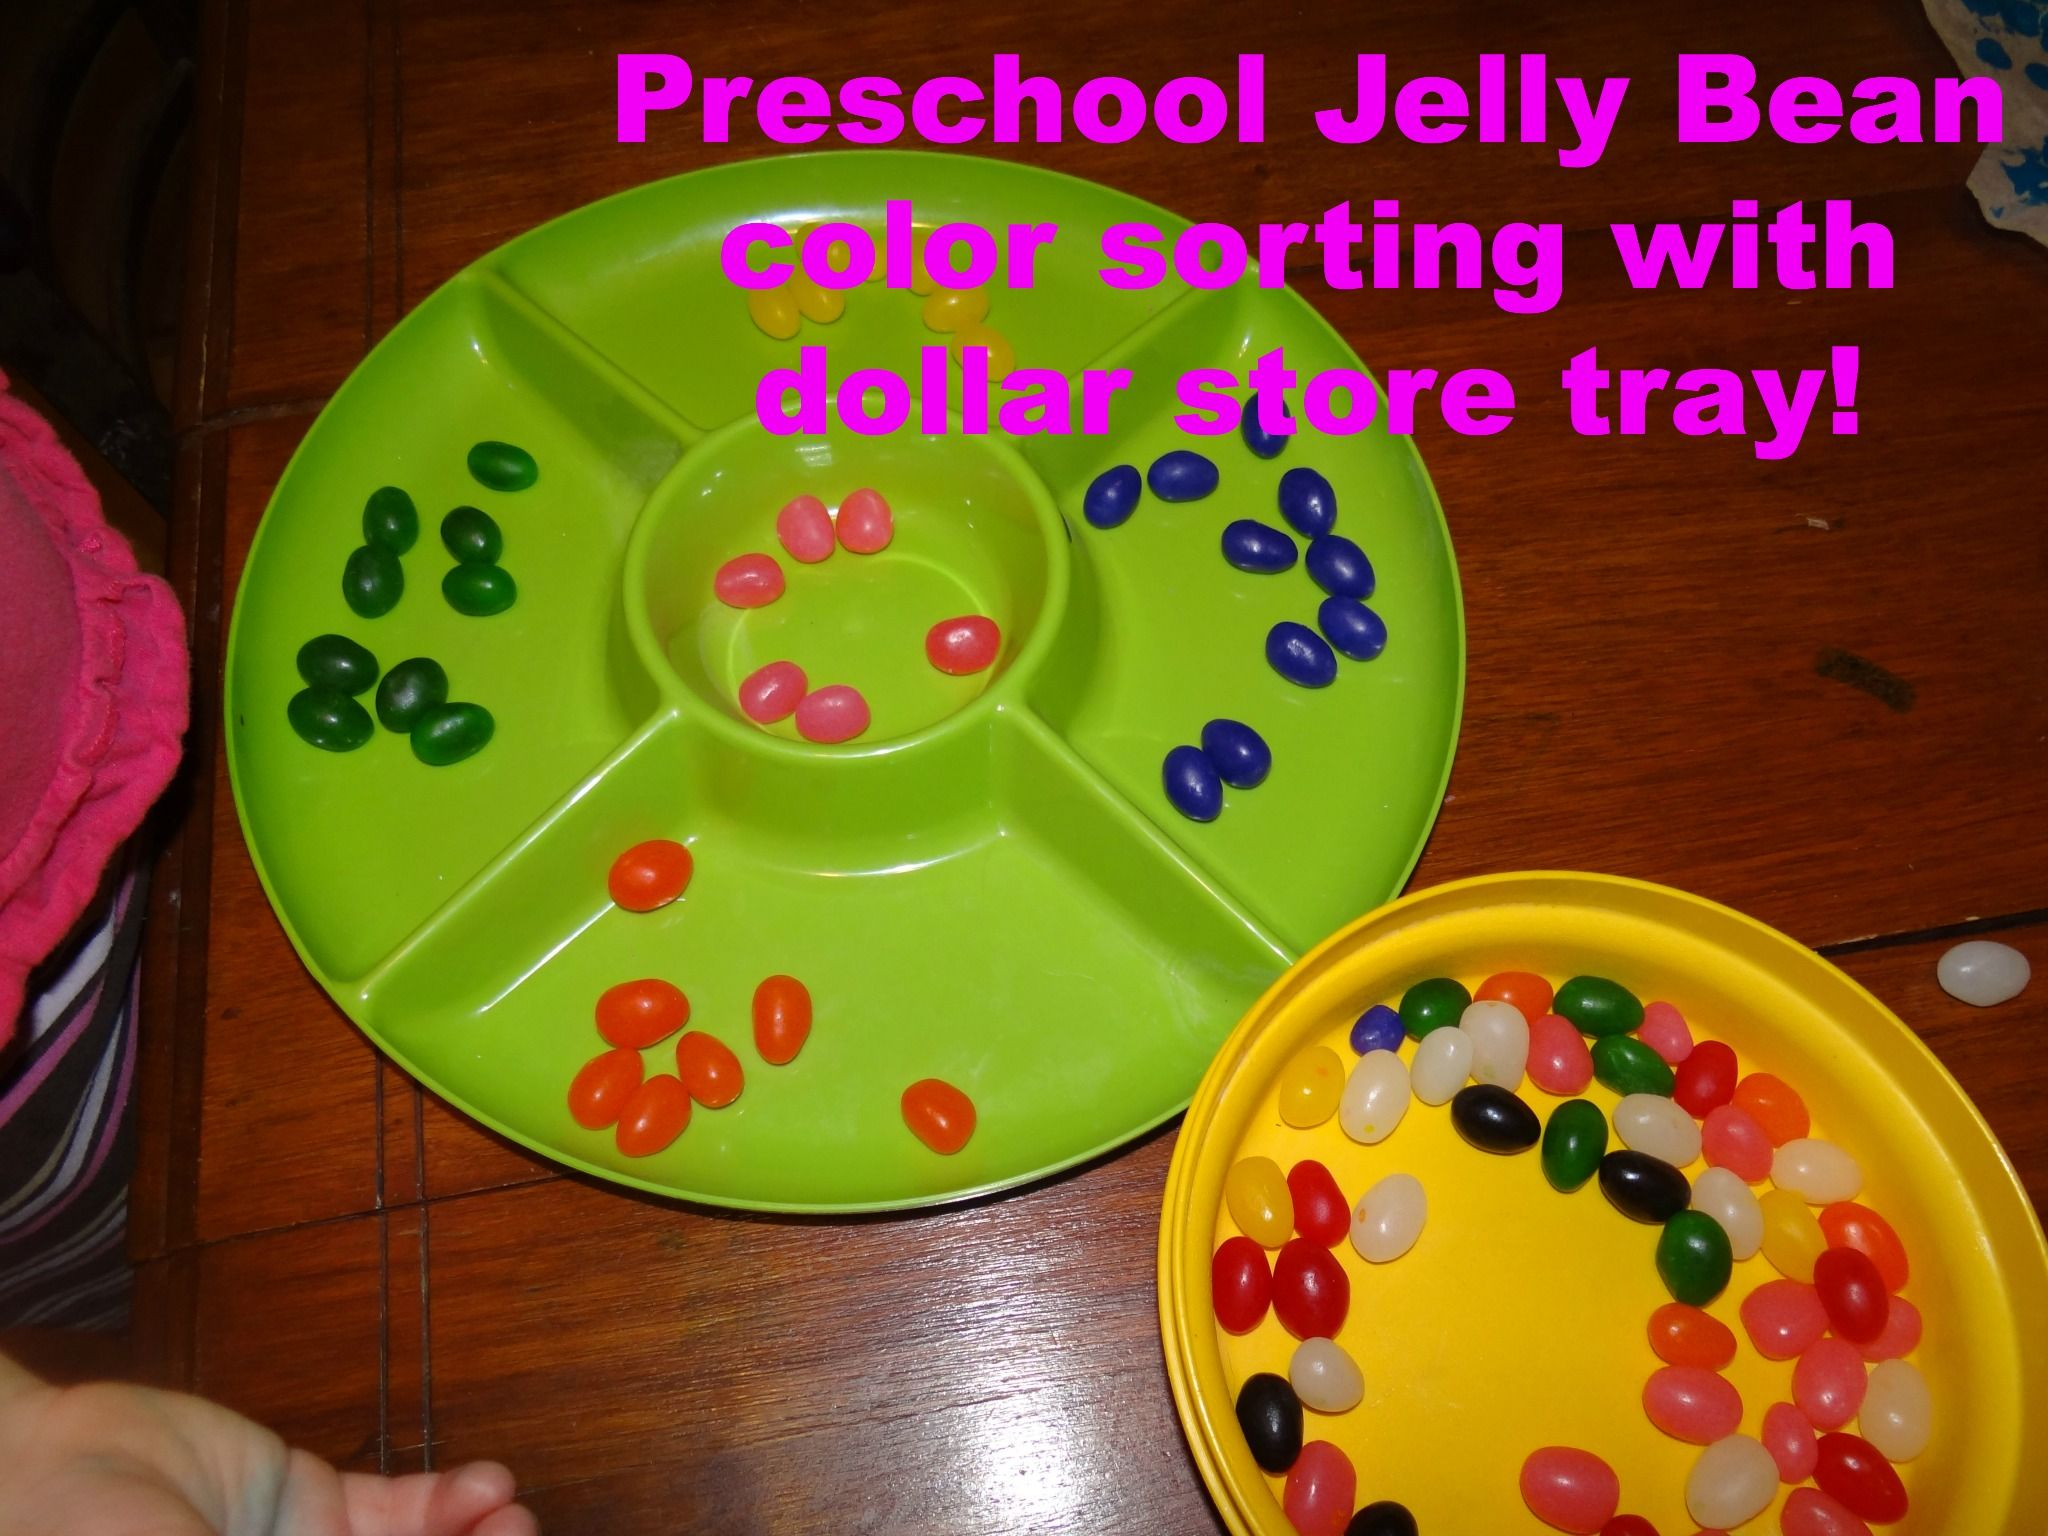 Preschool Jelly Bean Color Sorting With Dollar Store Tray